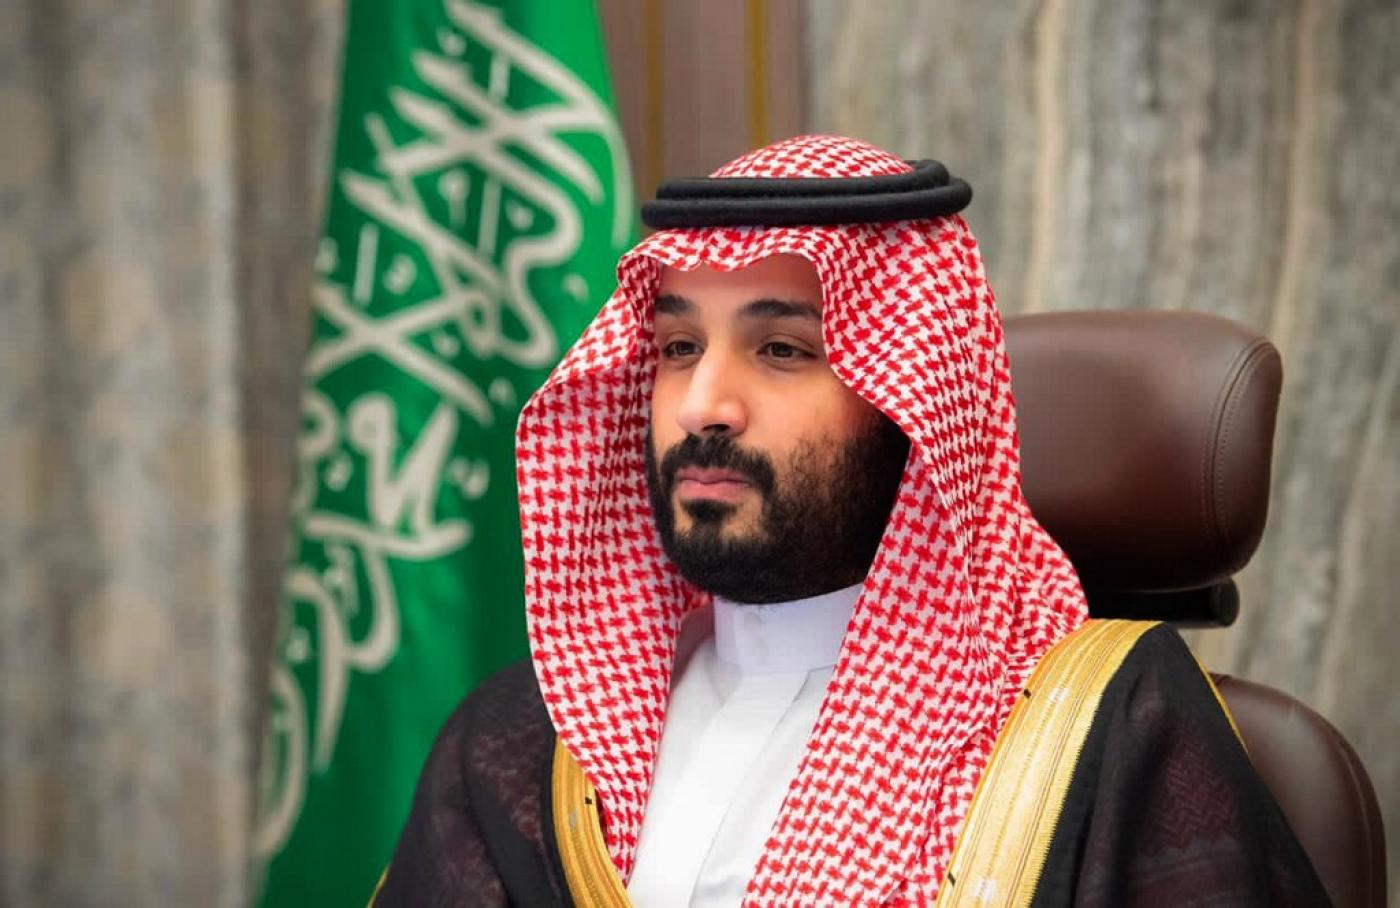 Mohammed bin Salman has centralised power and targeted any and all perceived foes and potential opponents since he outmanoeuvred more senior rivals in 2017 to become crown prince